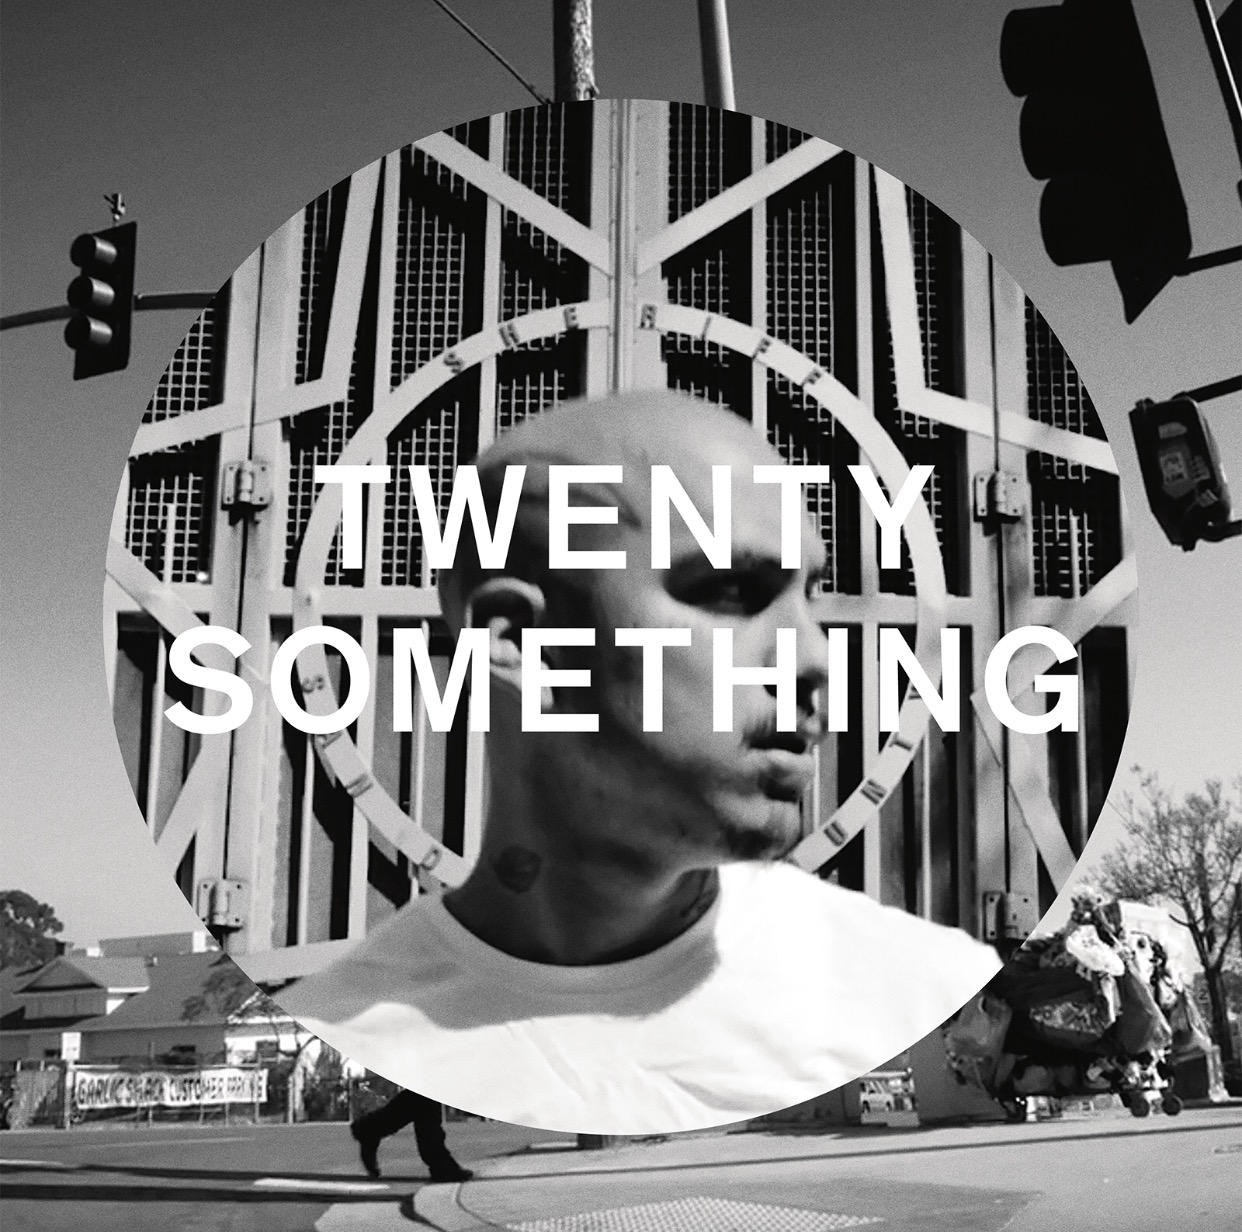 Twenty-something download